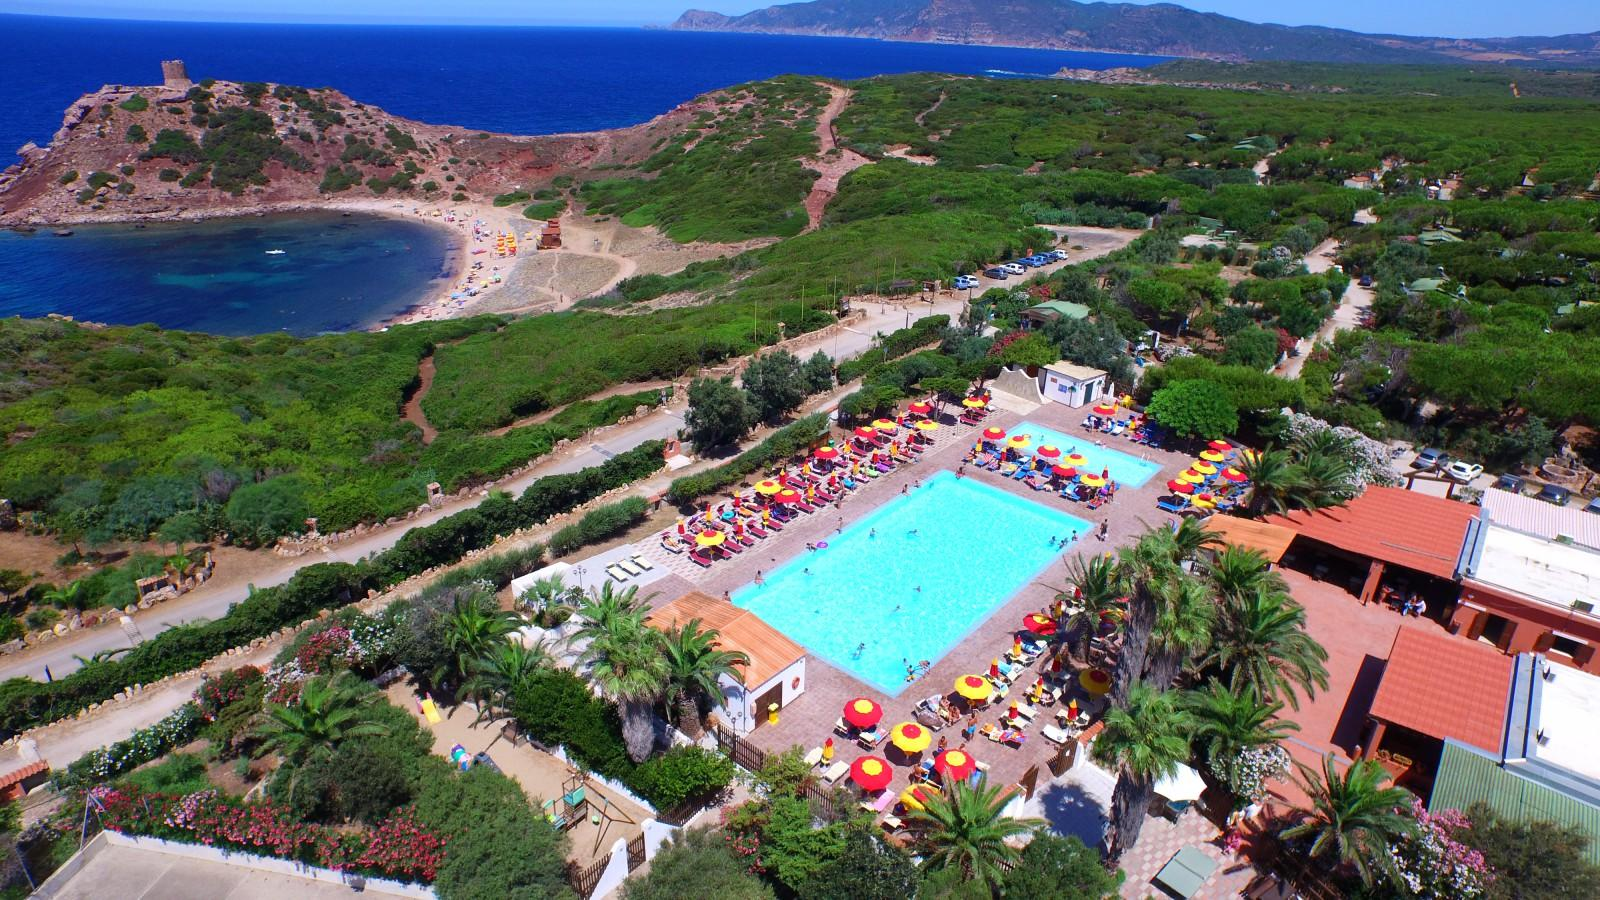 Cottage 2 Rooms in camping Village with pool, Alghero, Sardinia